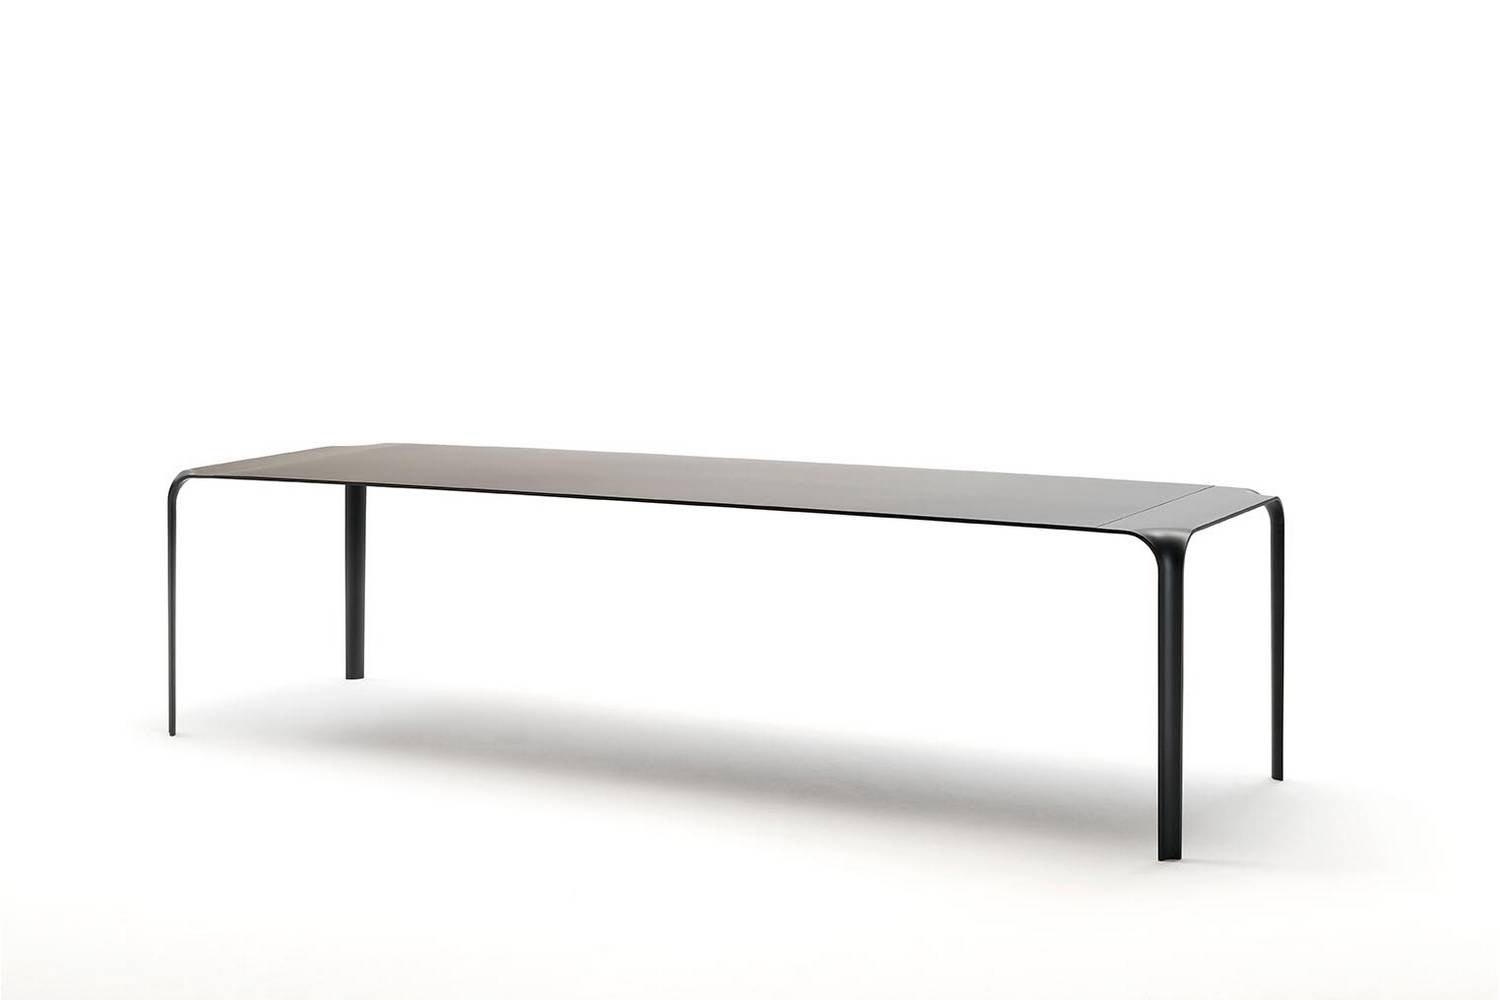 Brasilia Table by David Lopez Quincoces for Living Divani